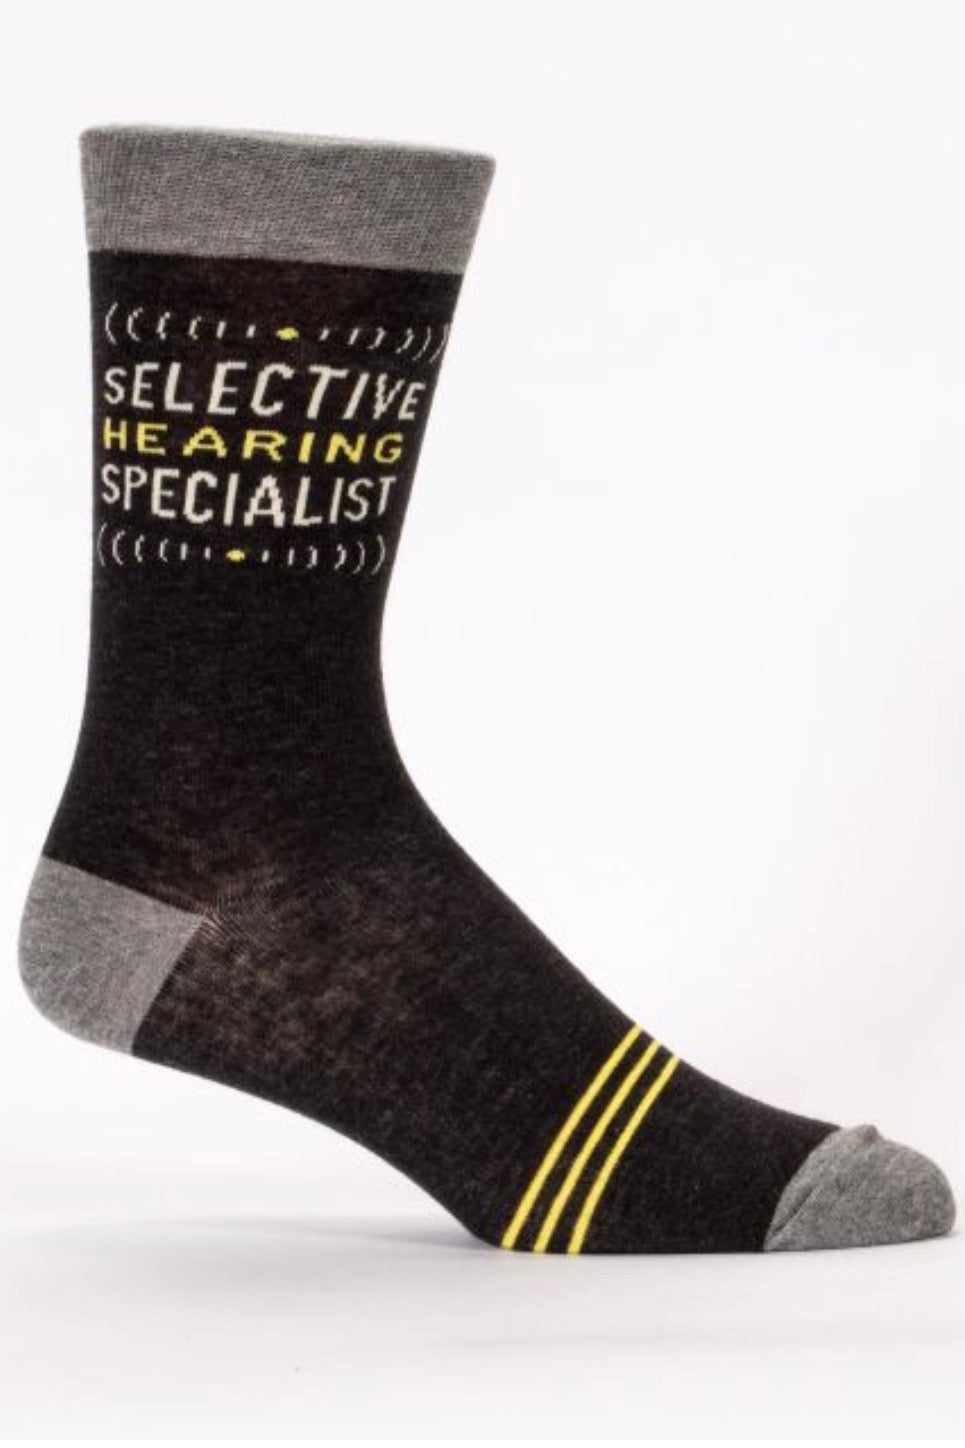 blue-q-SW851-selective-hearing-specialist-mens-crew-socks-black